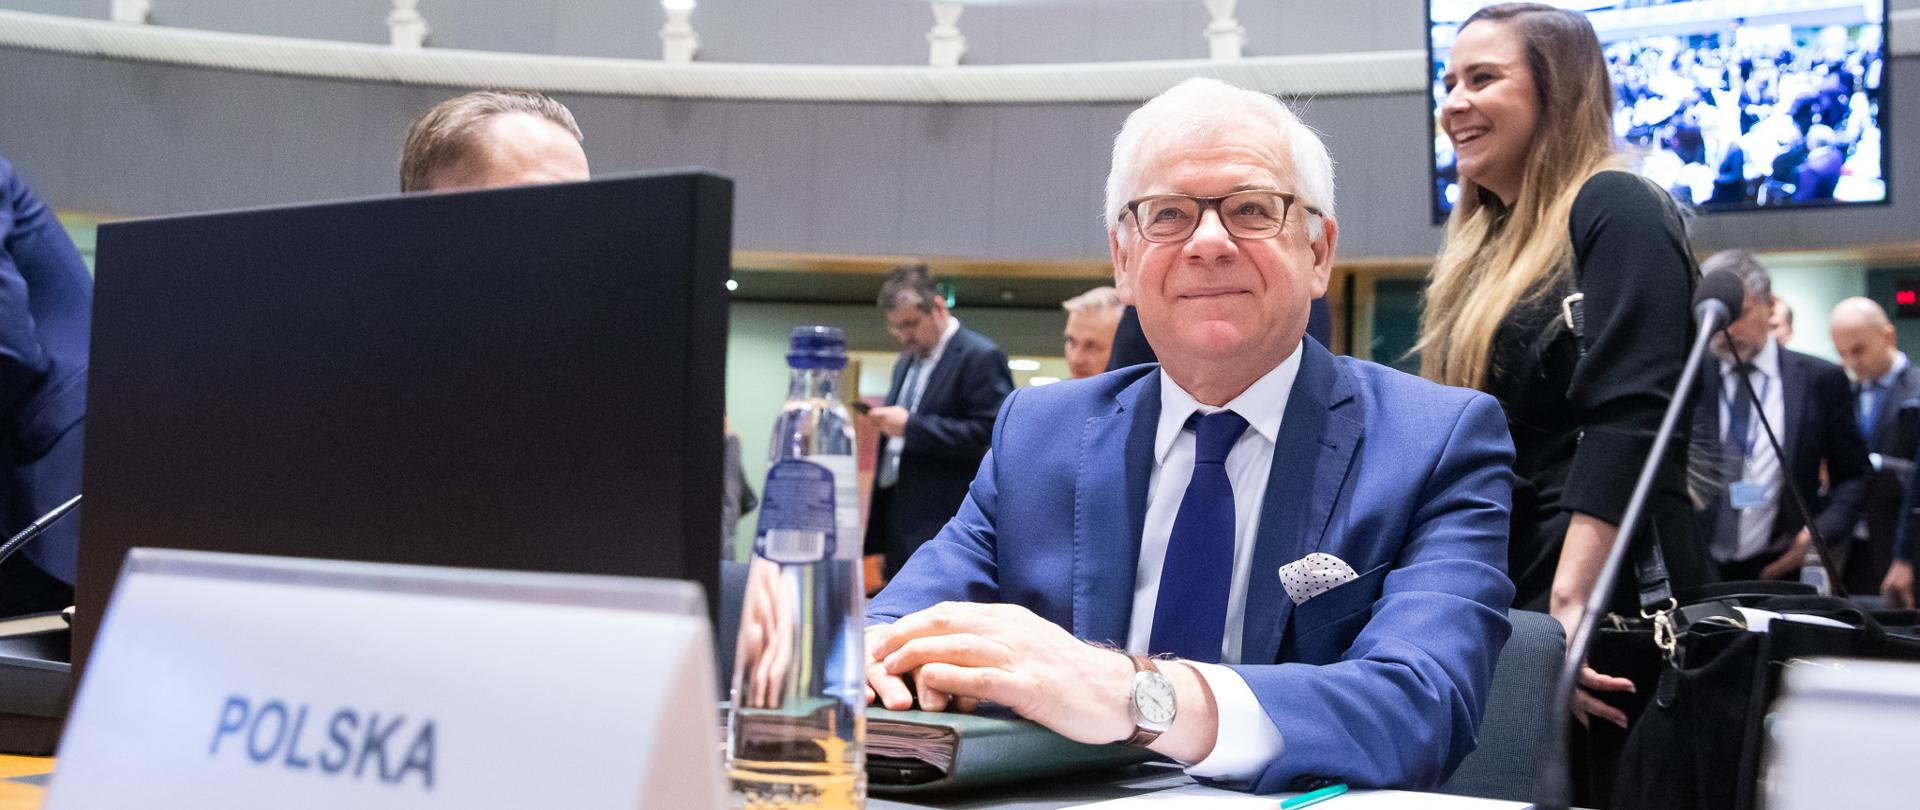 Minister Jacek Czaputowicz attends Foreign Affairs Council in Brussels